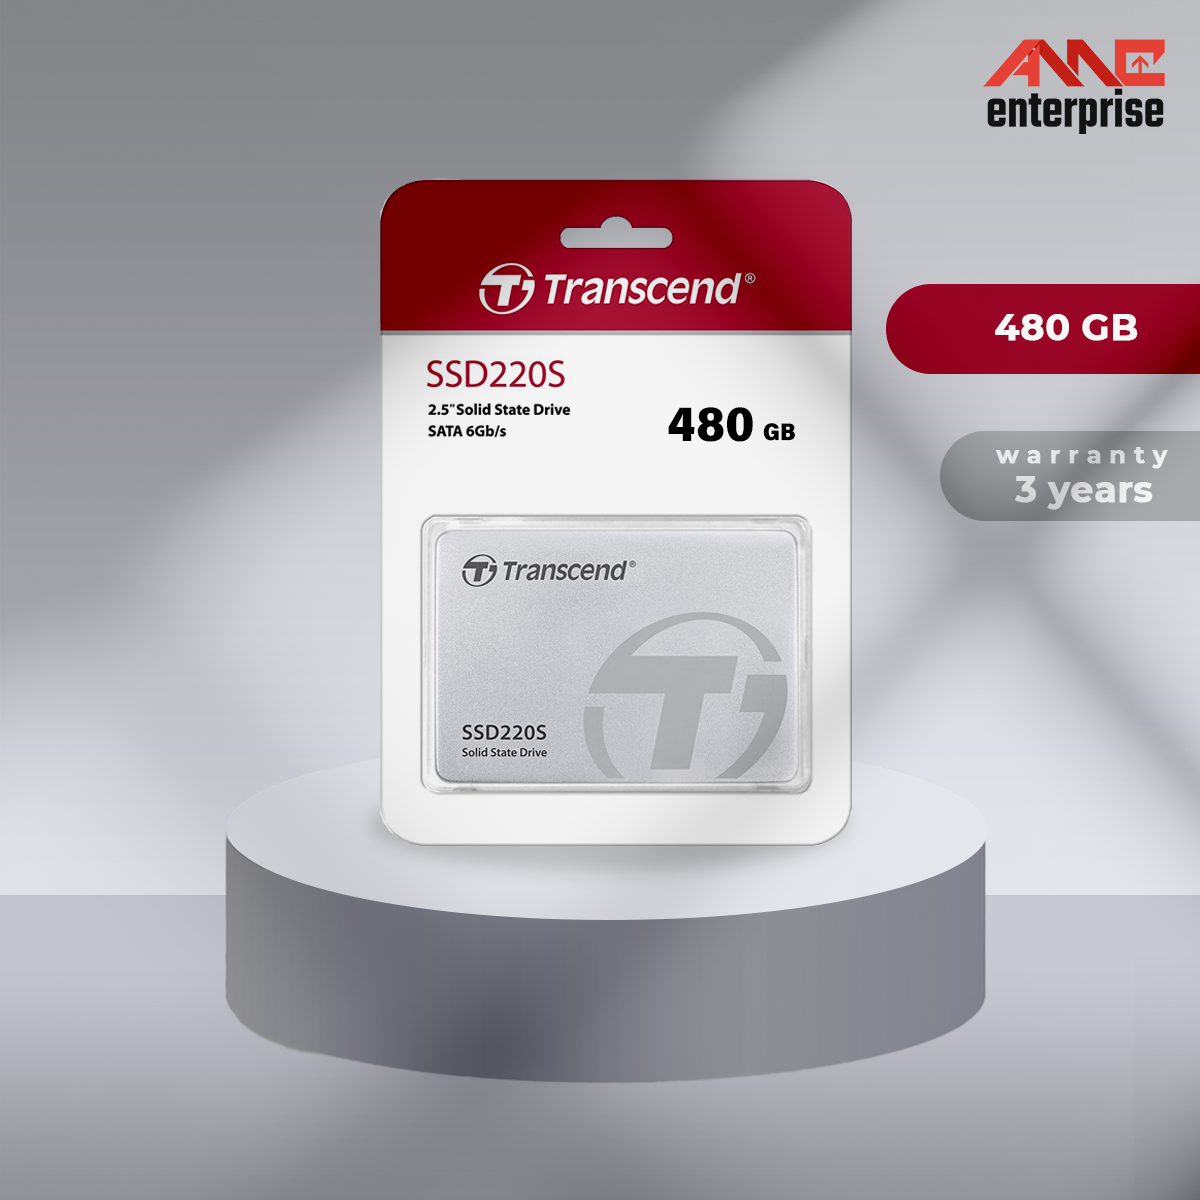 TRANSCEND SSD220S 2.5 SOLID STATE DRIVE SATA (2).png